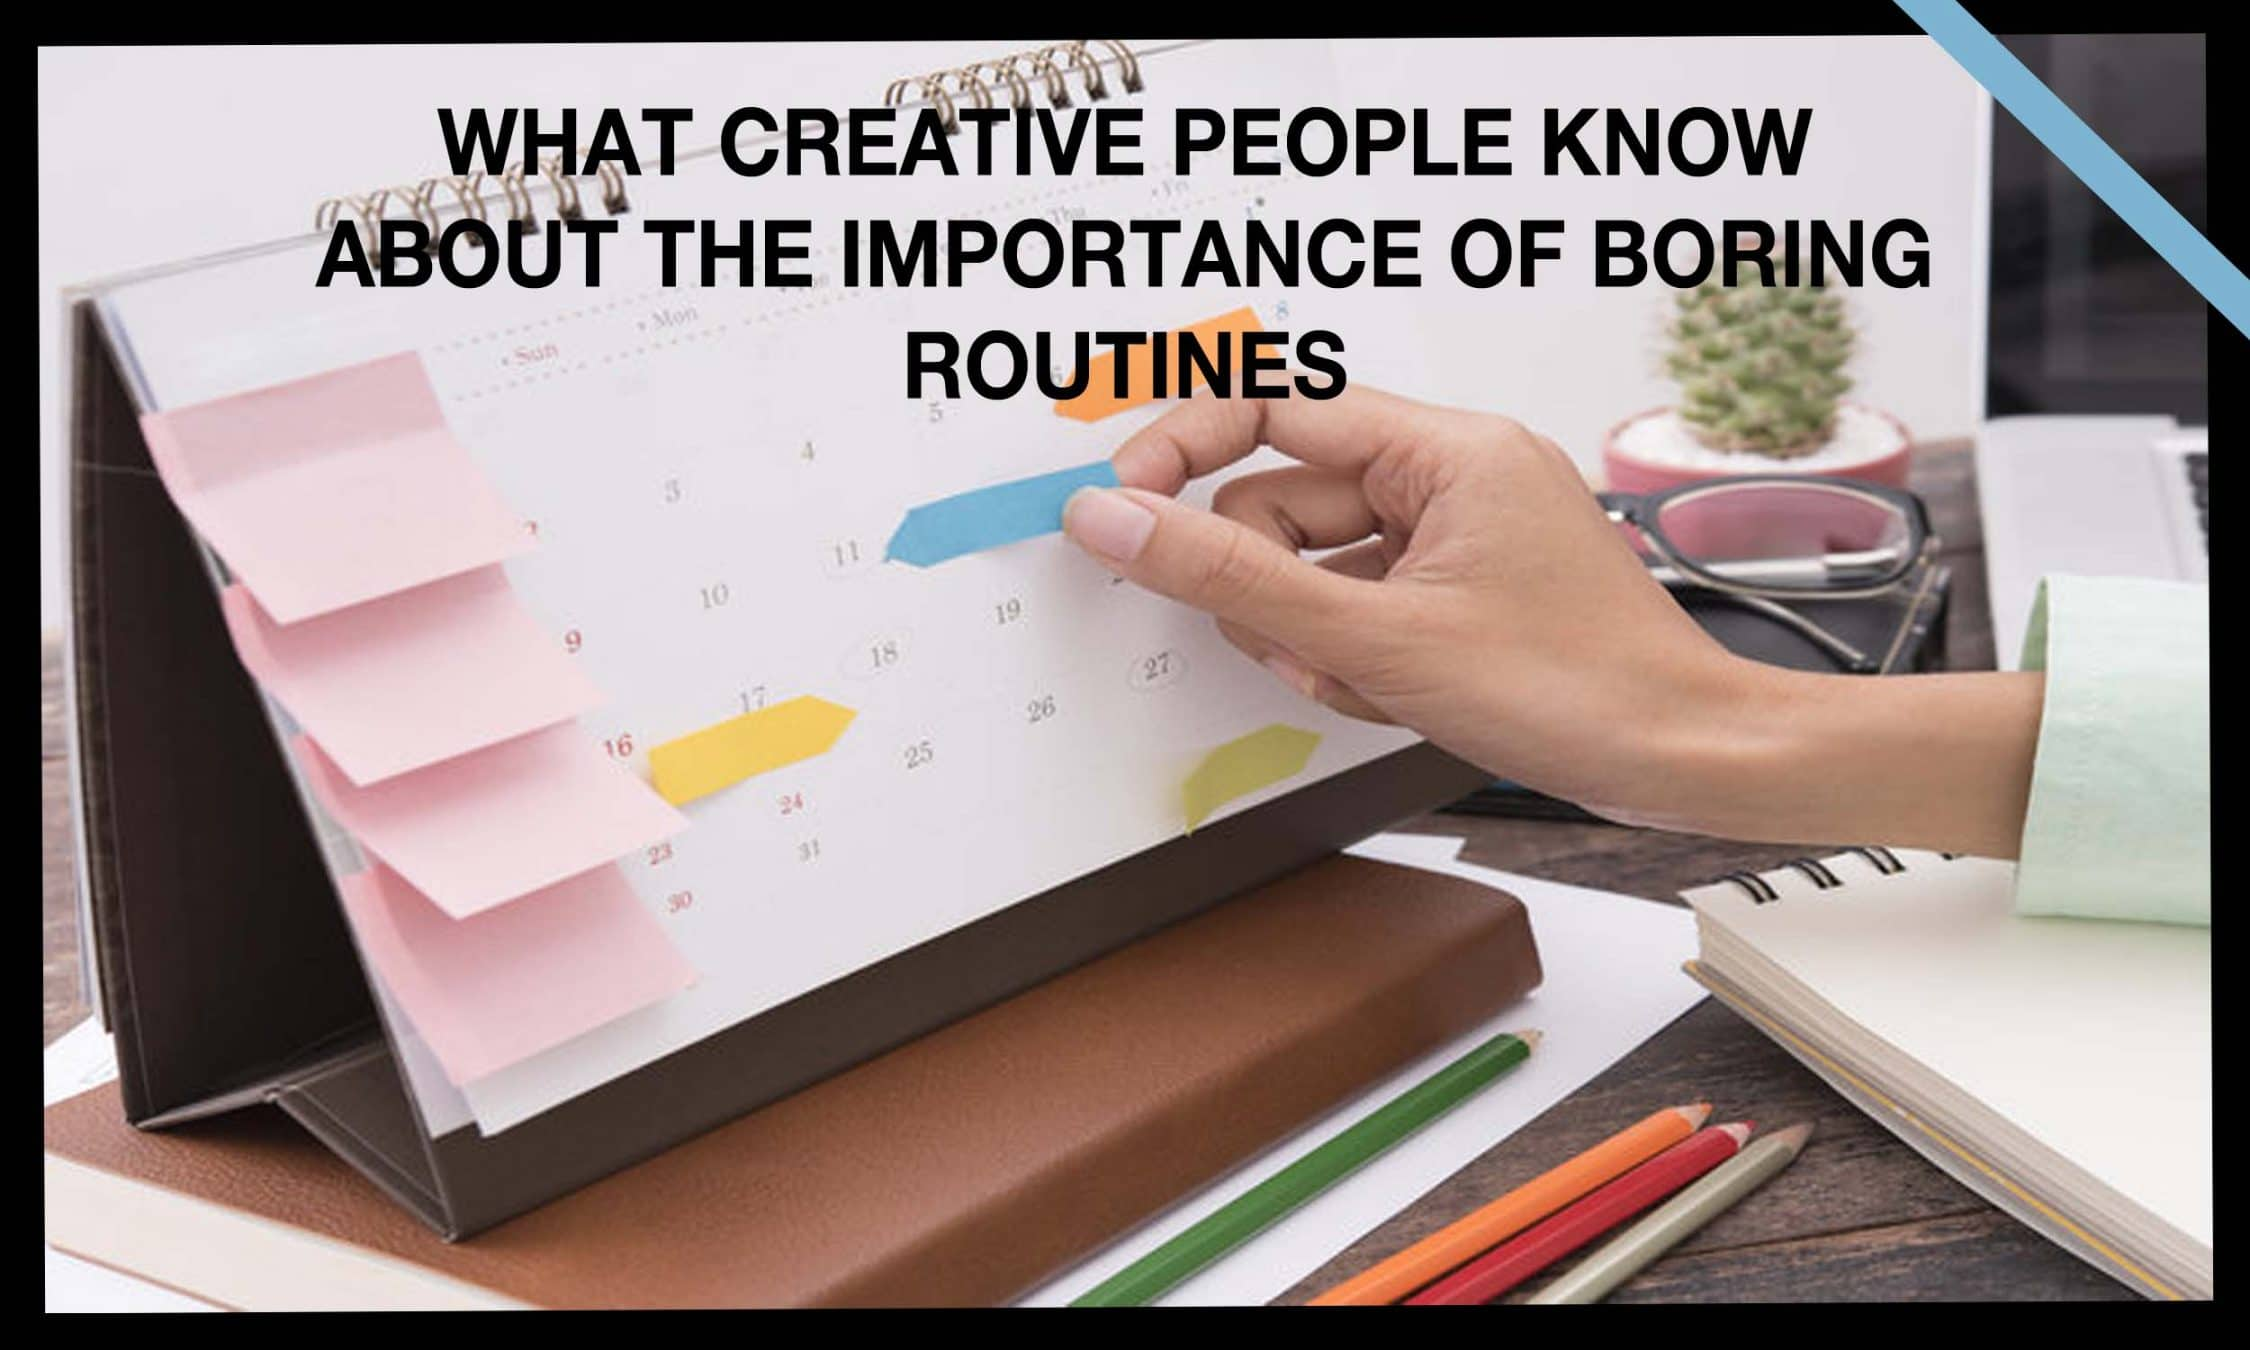 What Creative People Know About the Importance of Boring Routines